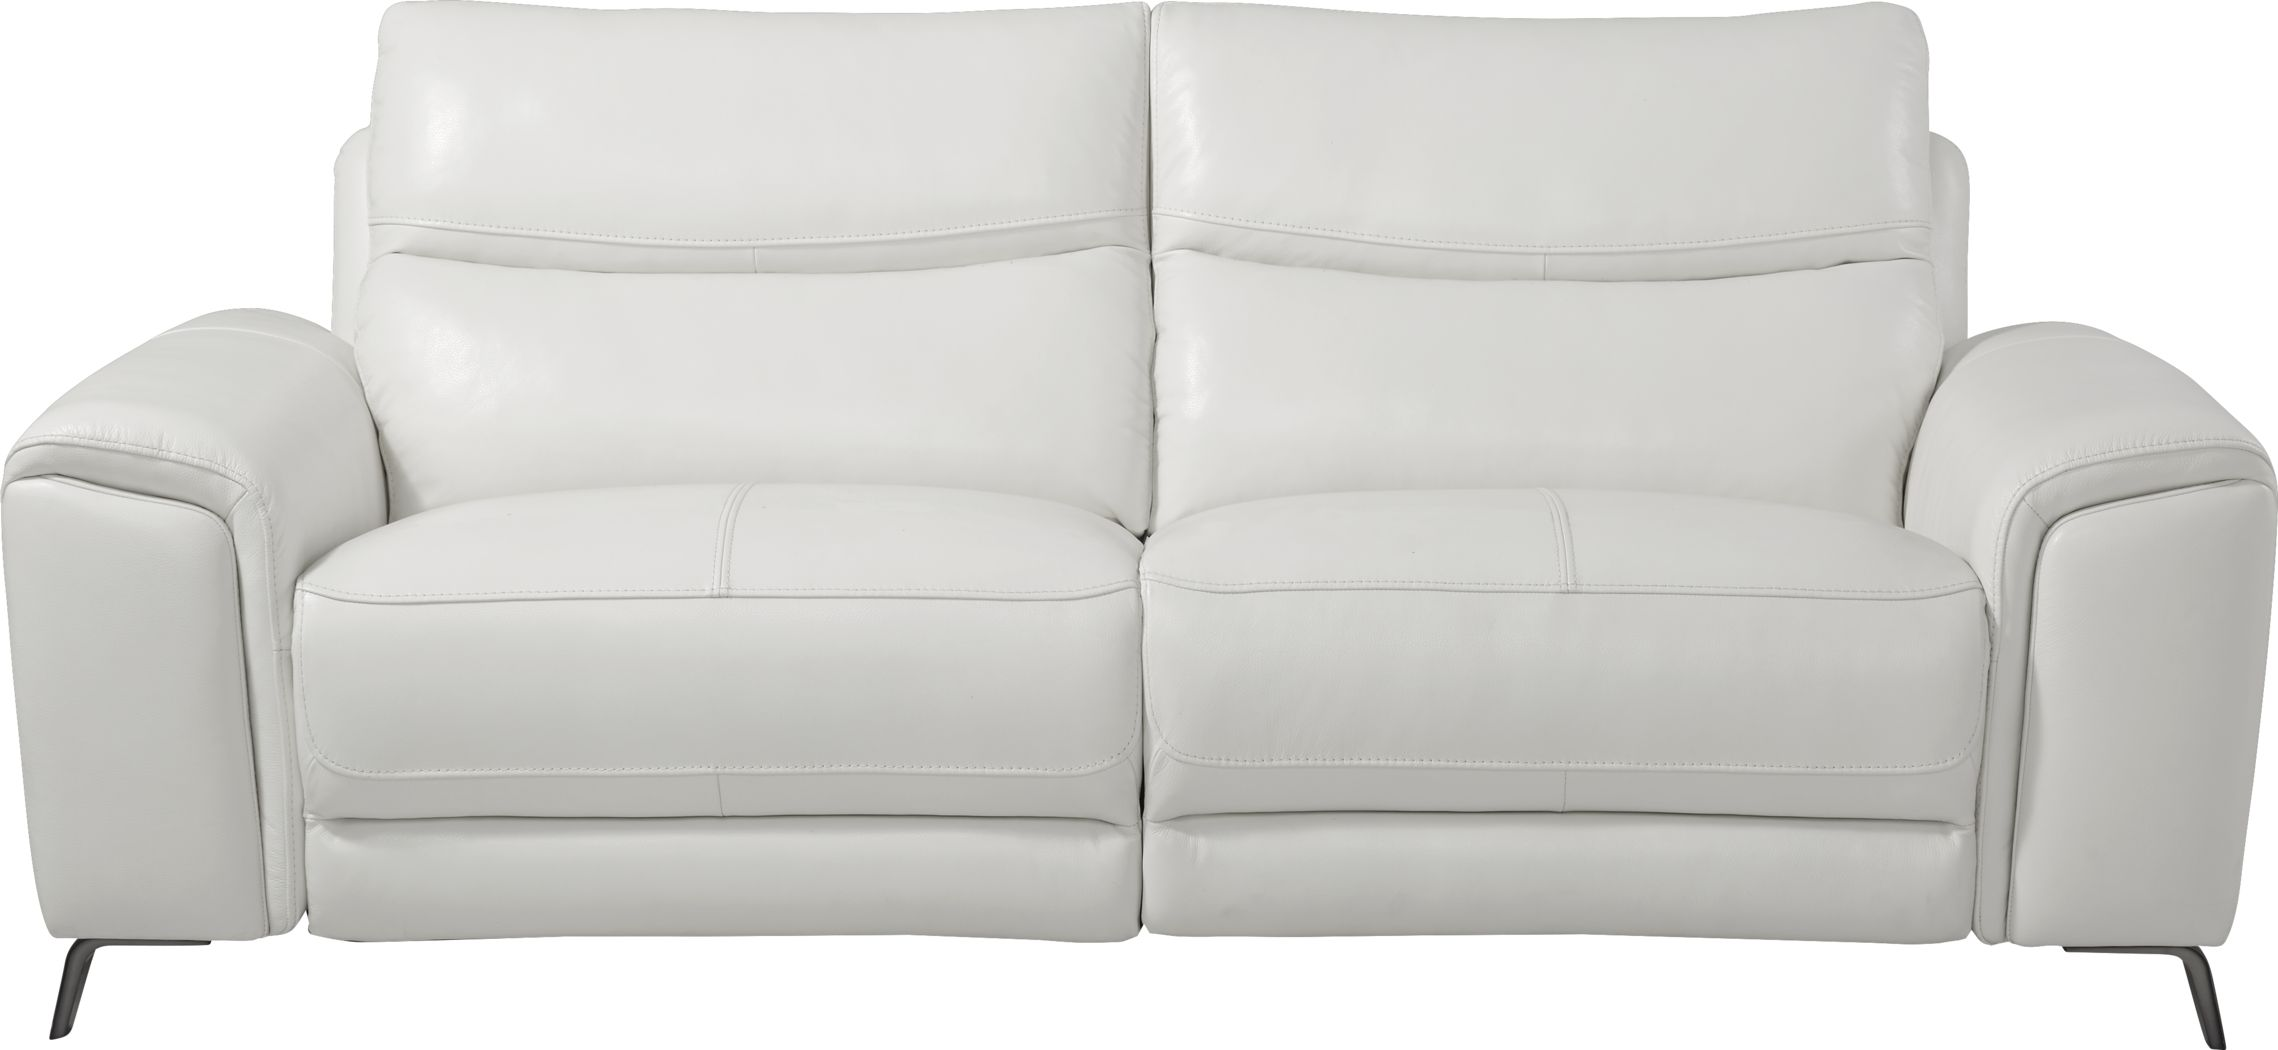 White Leather Sofas Couches